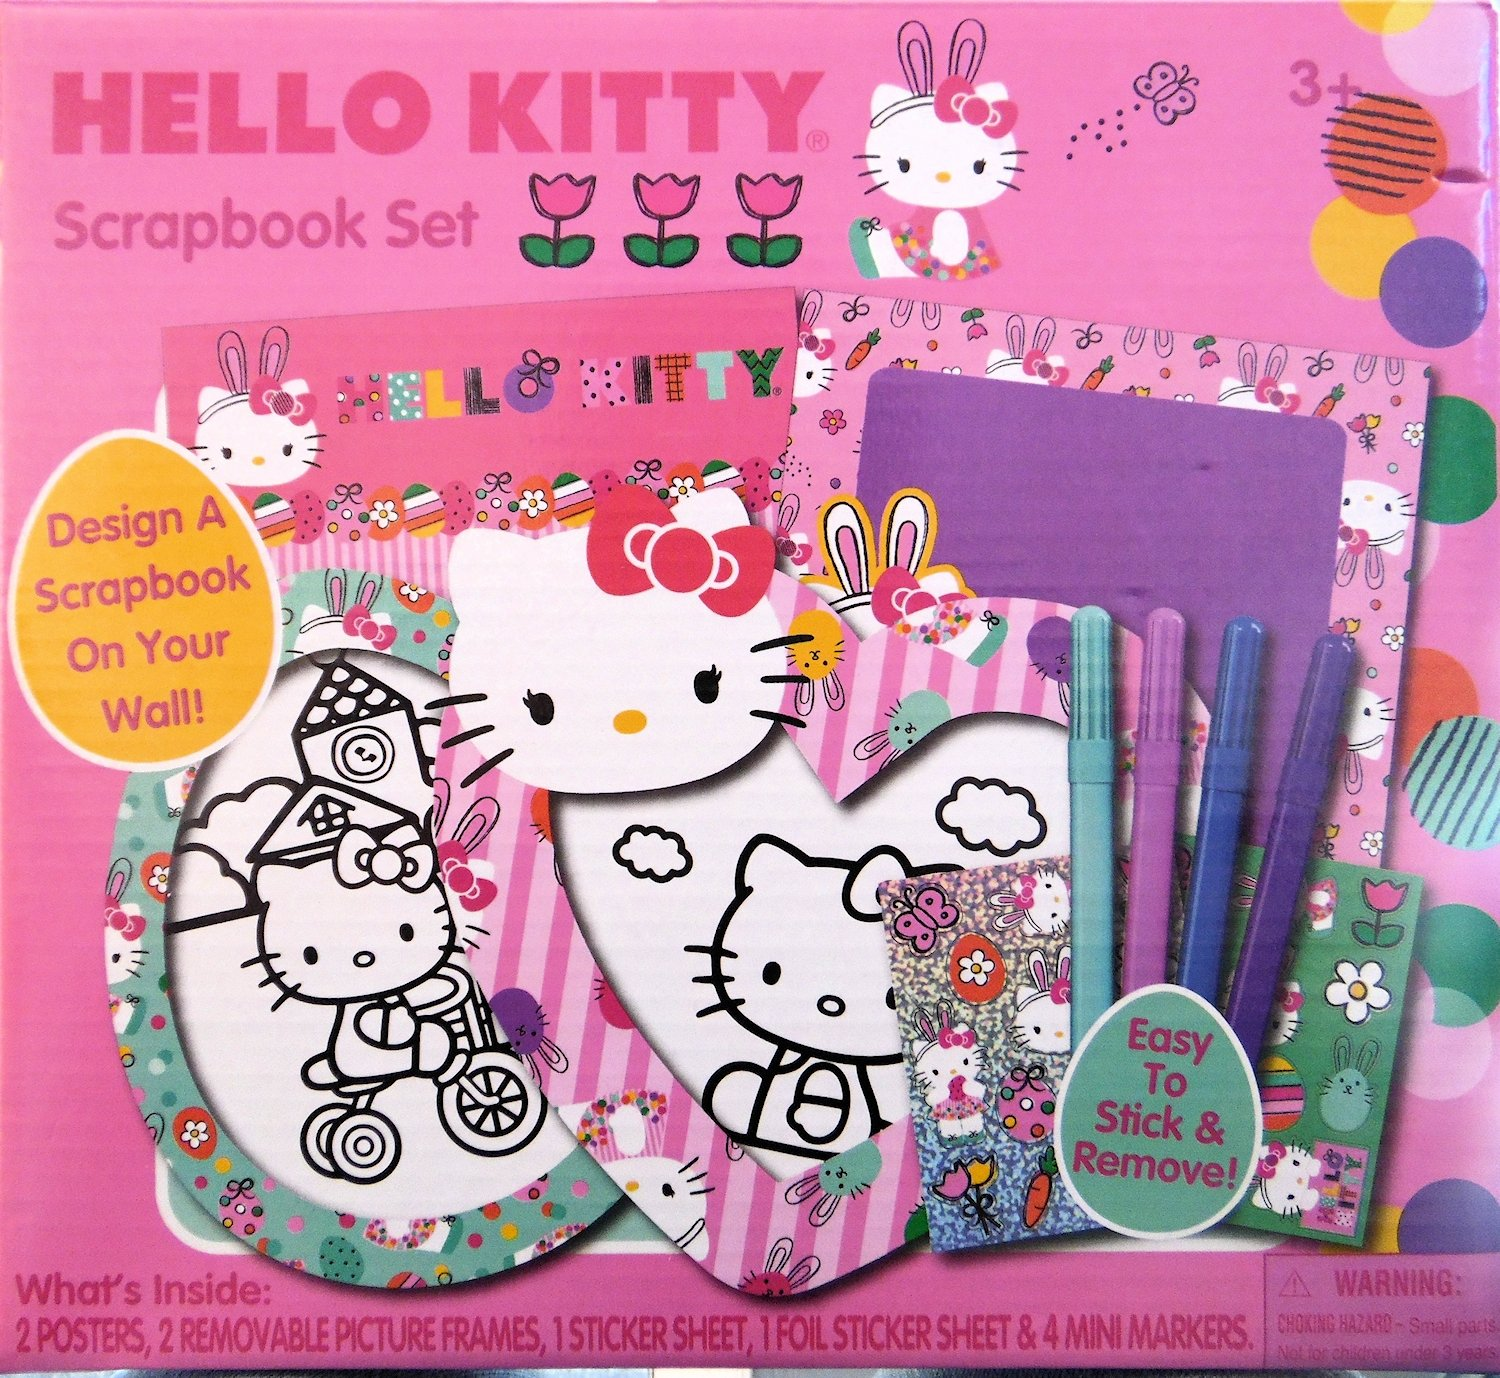 Hello Kitty Scrapbook Kit Craft Project with Posters, Frames, Stickers and Markers